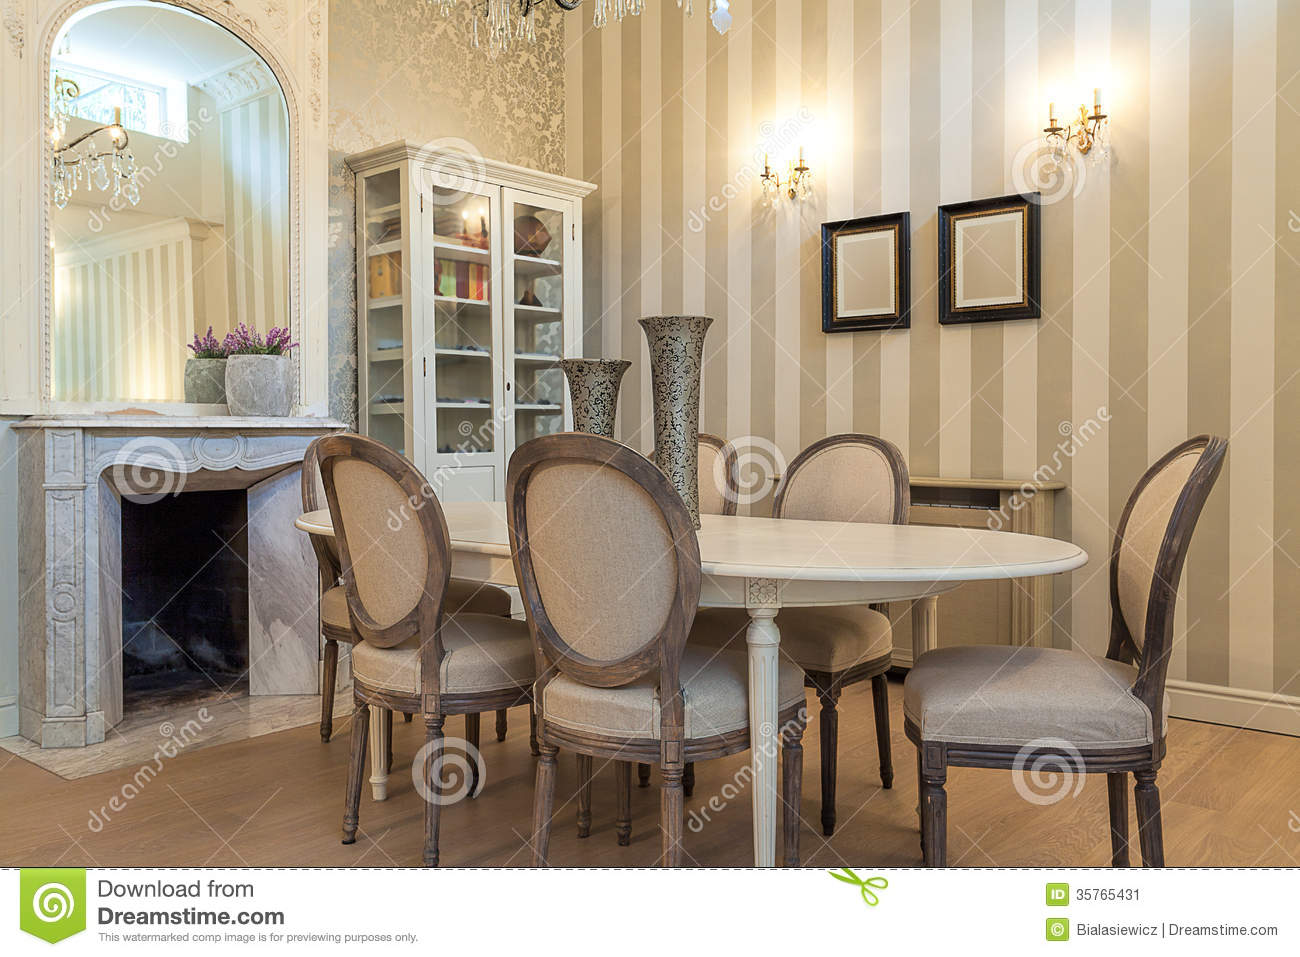 manoir de vintage table de salle manger image stock. Black Bedroom Furniture Sets. Home Design Ideas